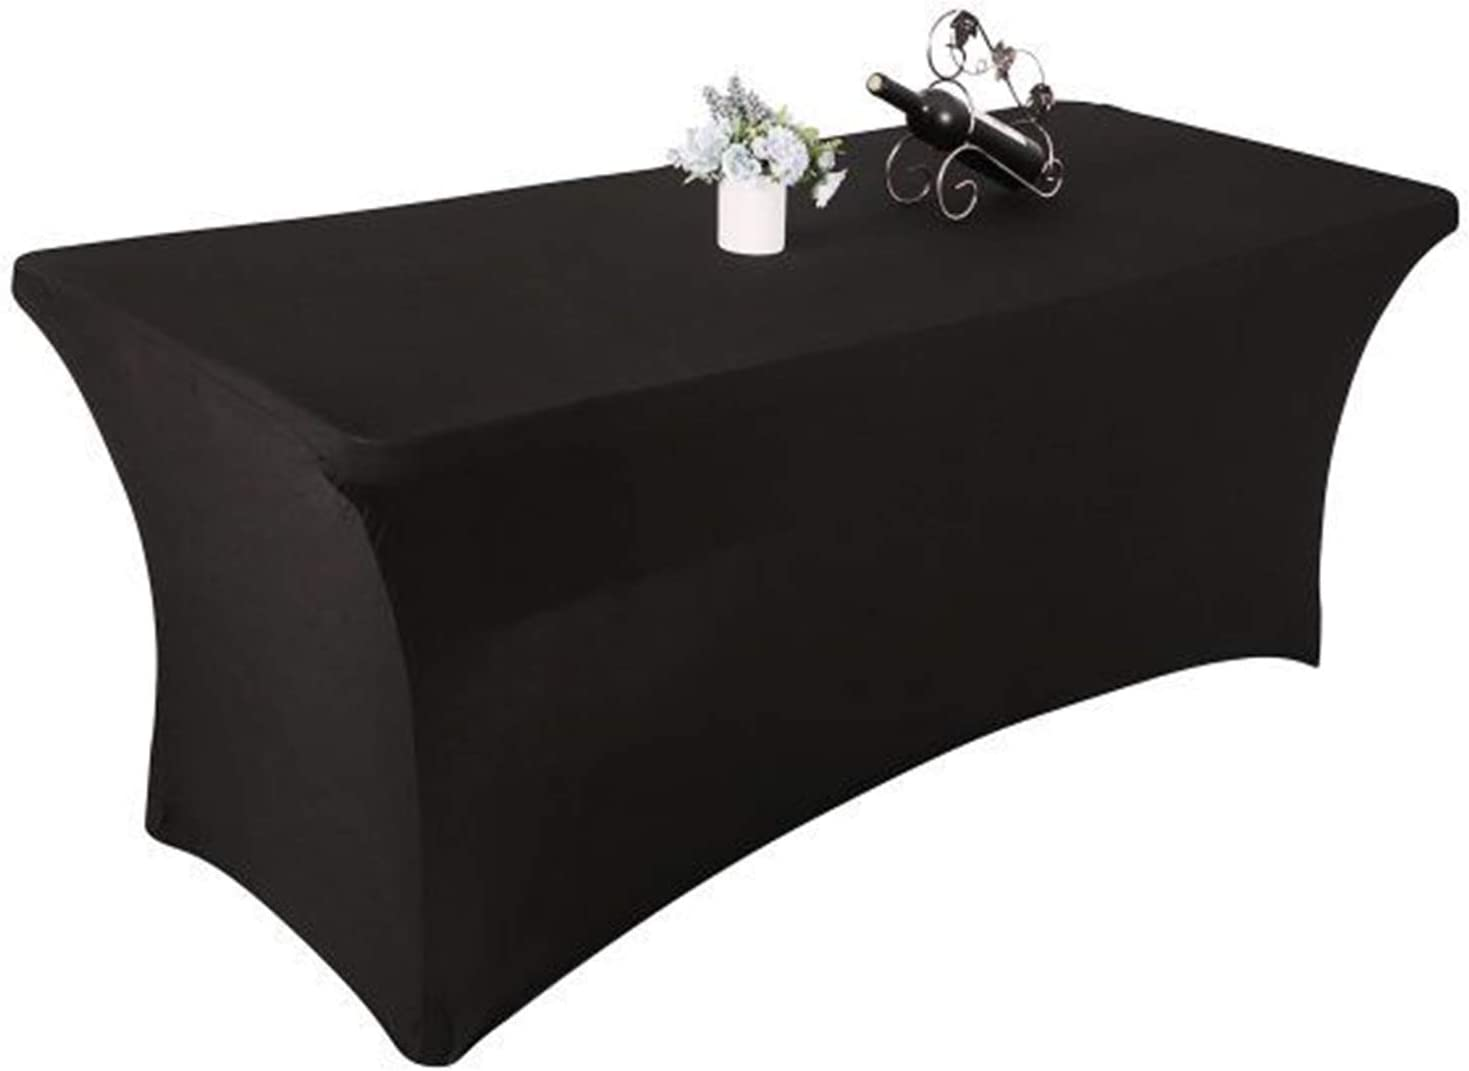 Yetomey Spandex Table Cover Rectangular Stretch Tablecloth,for DJ,Tradeshows,Vendors,Weddings